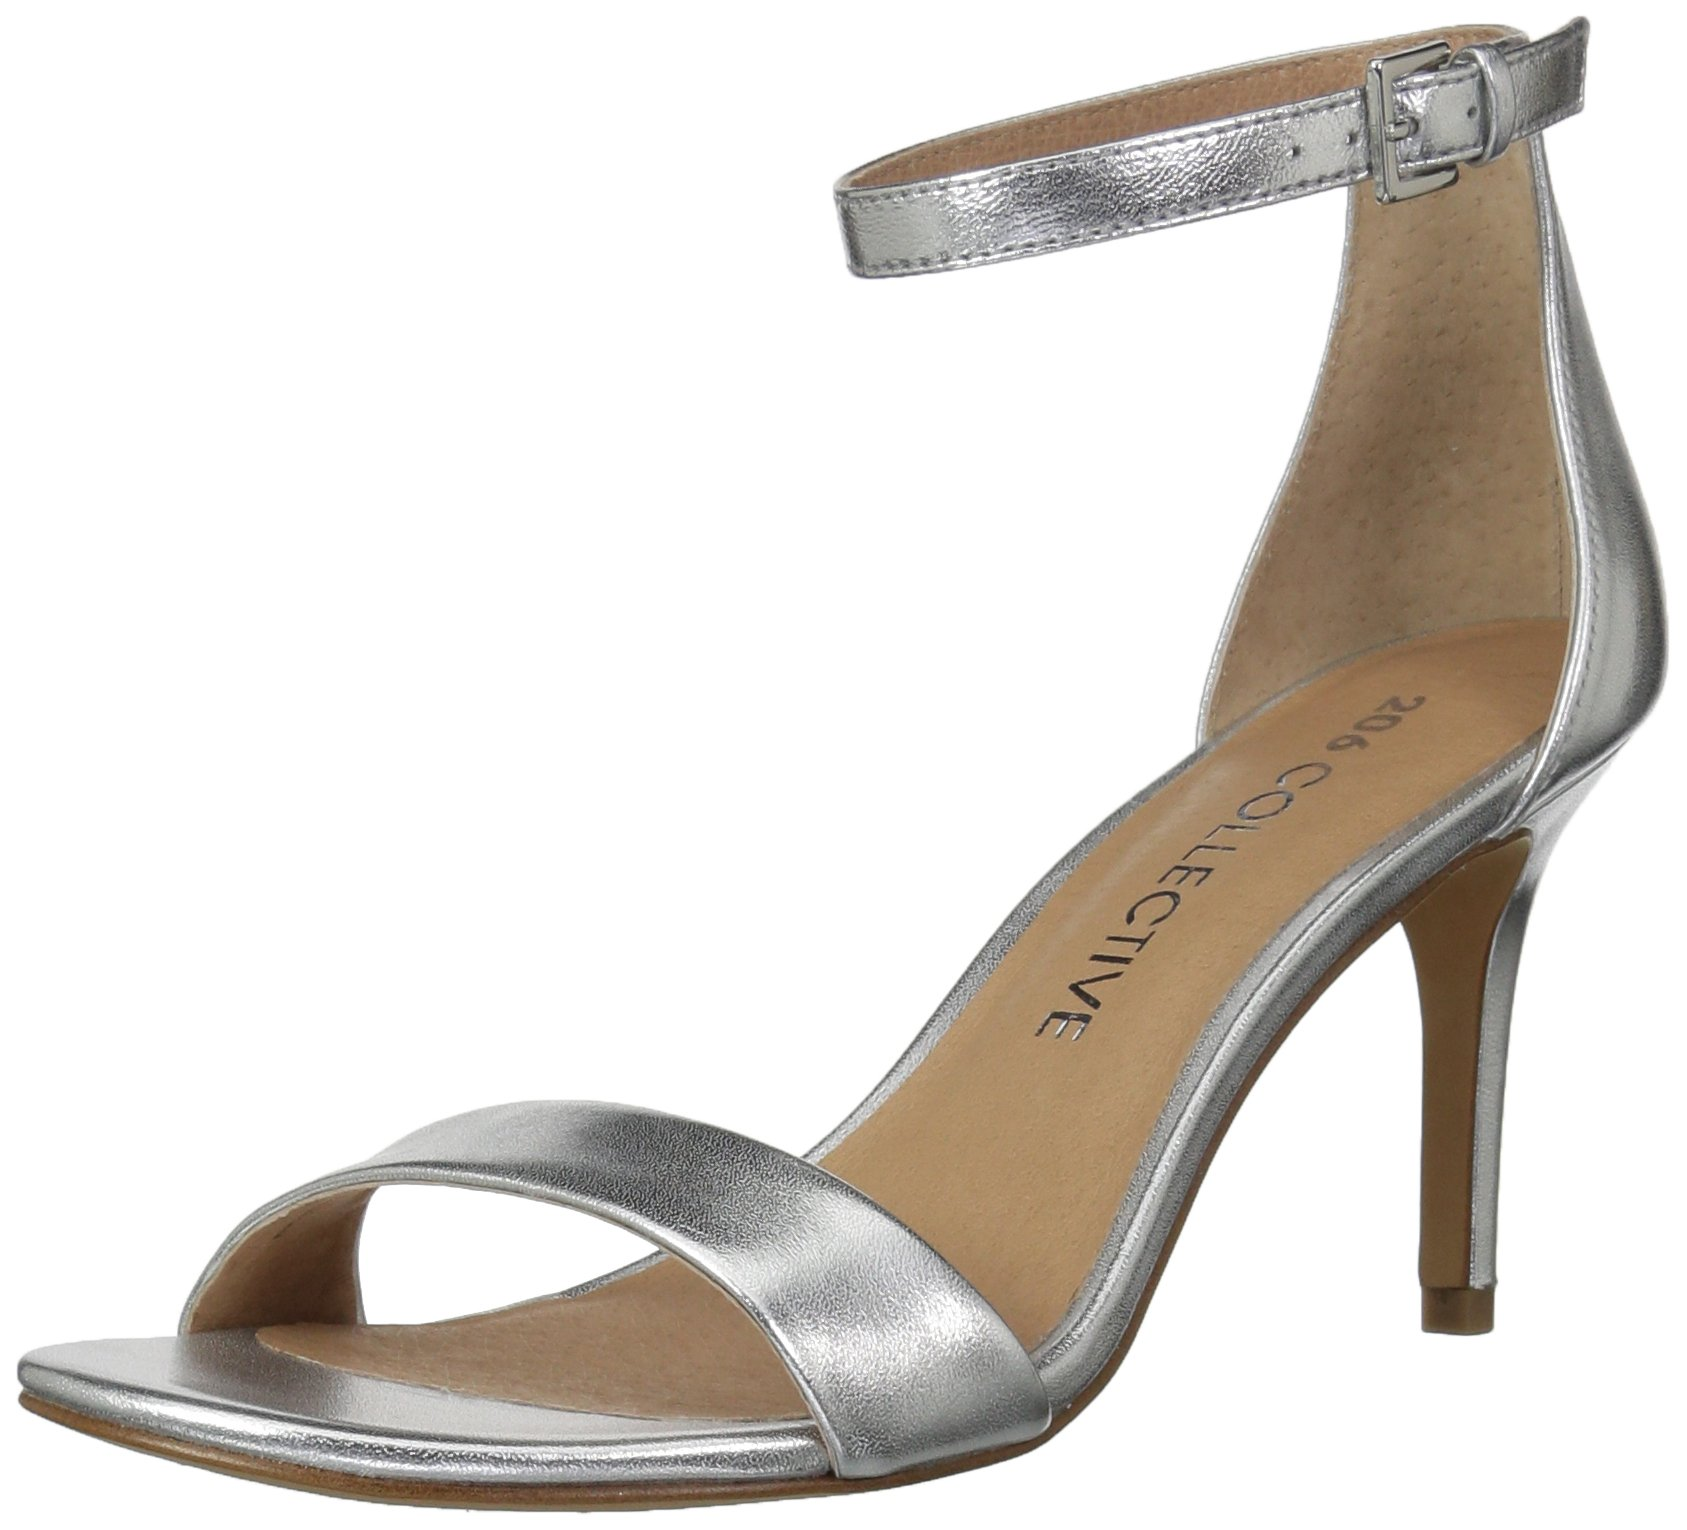 206 Collective Women's Anamarie Stiletto Heel Dress High Heeled Sandal, Silver Leather, 7.5 B US